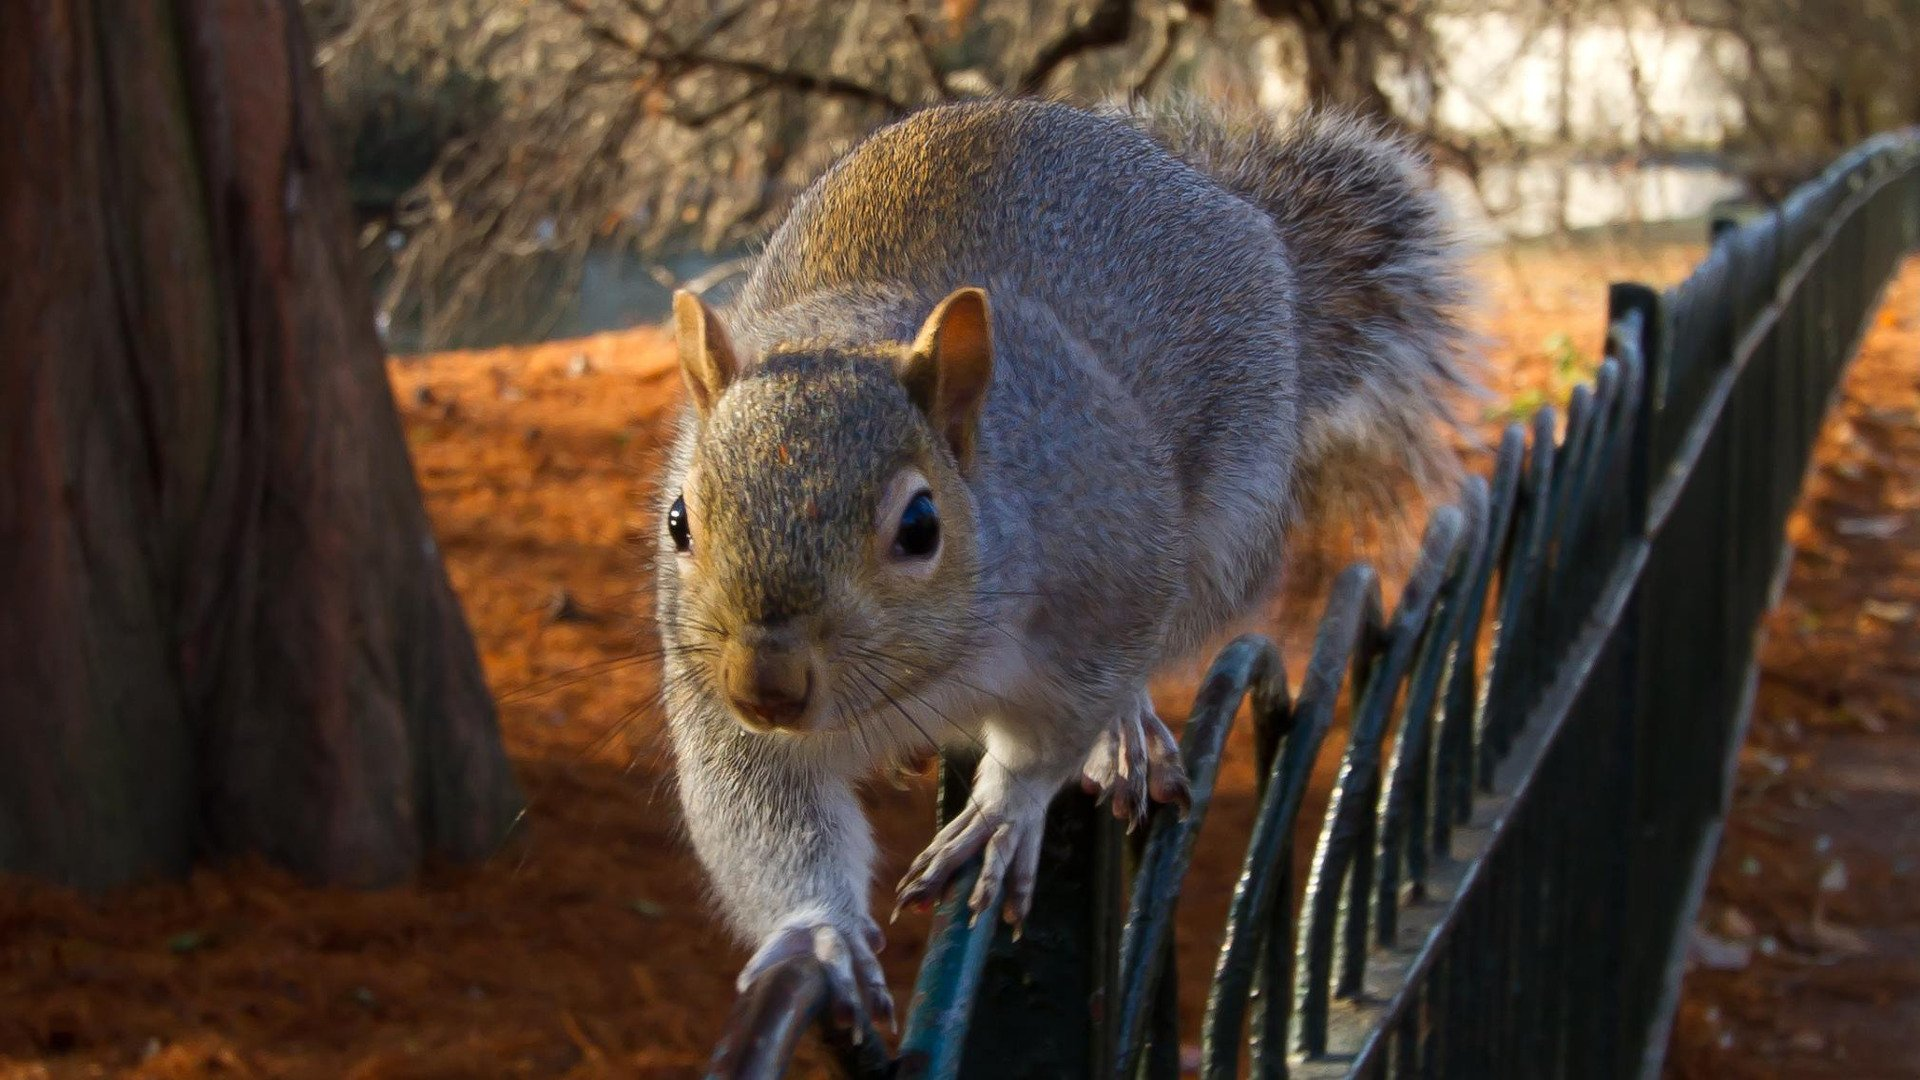 39 funny squirrel wallpaper on wallpapersafari - Funny squirrel backgrounds ...